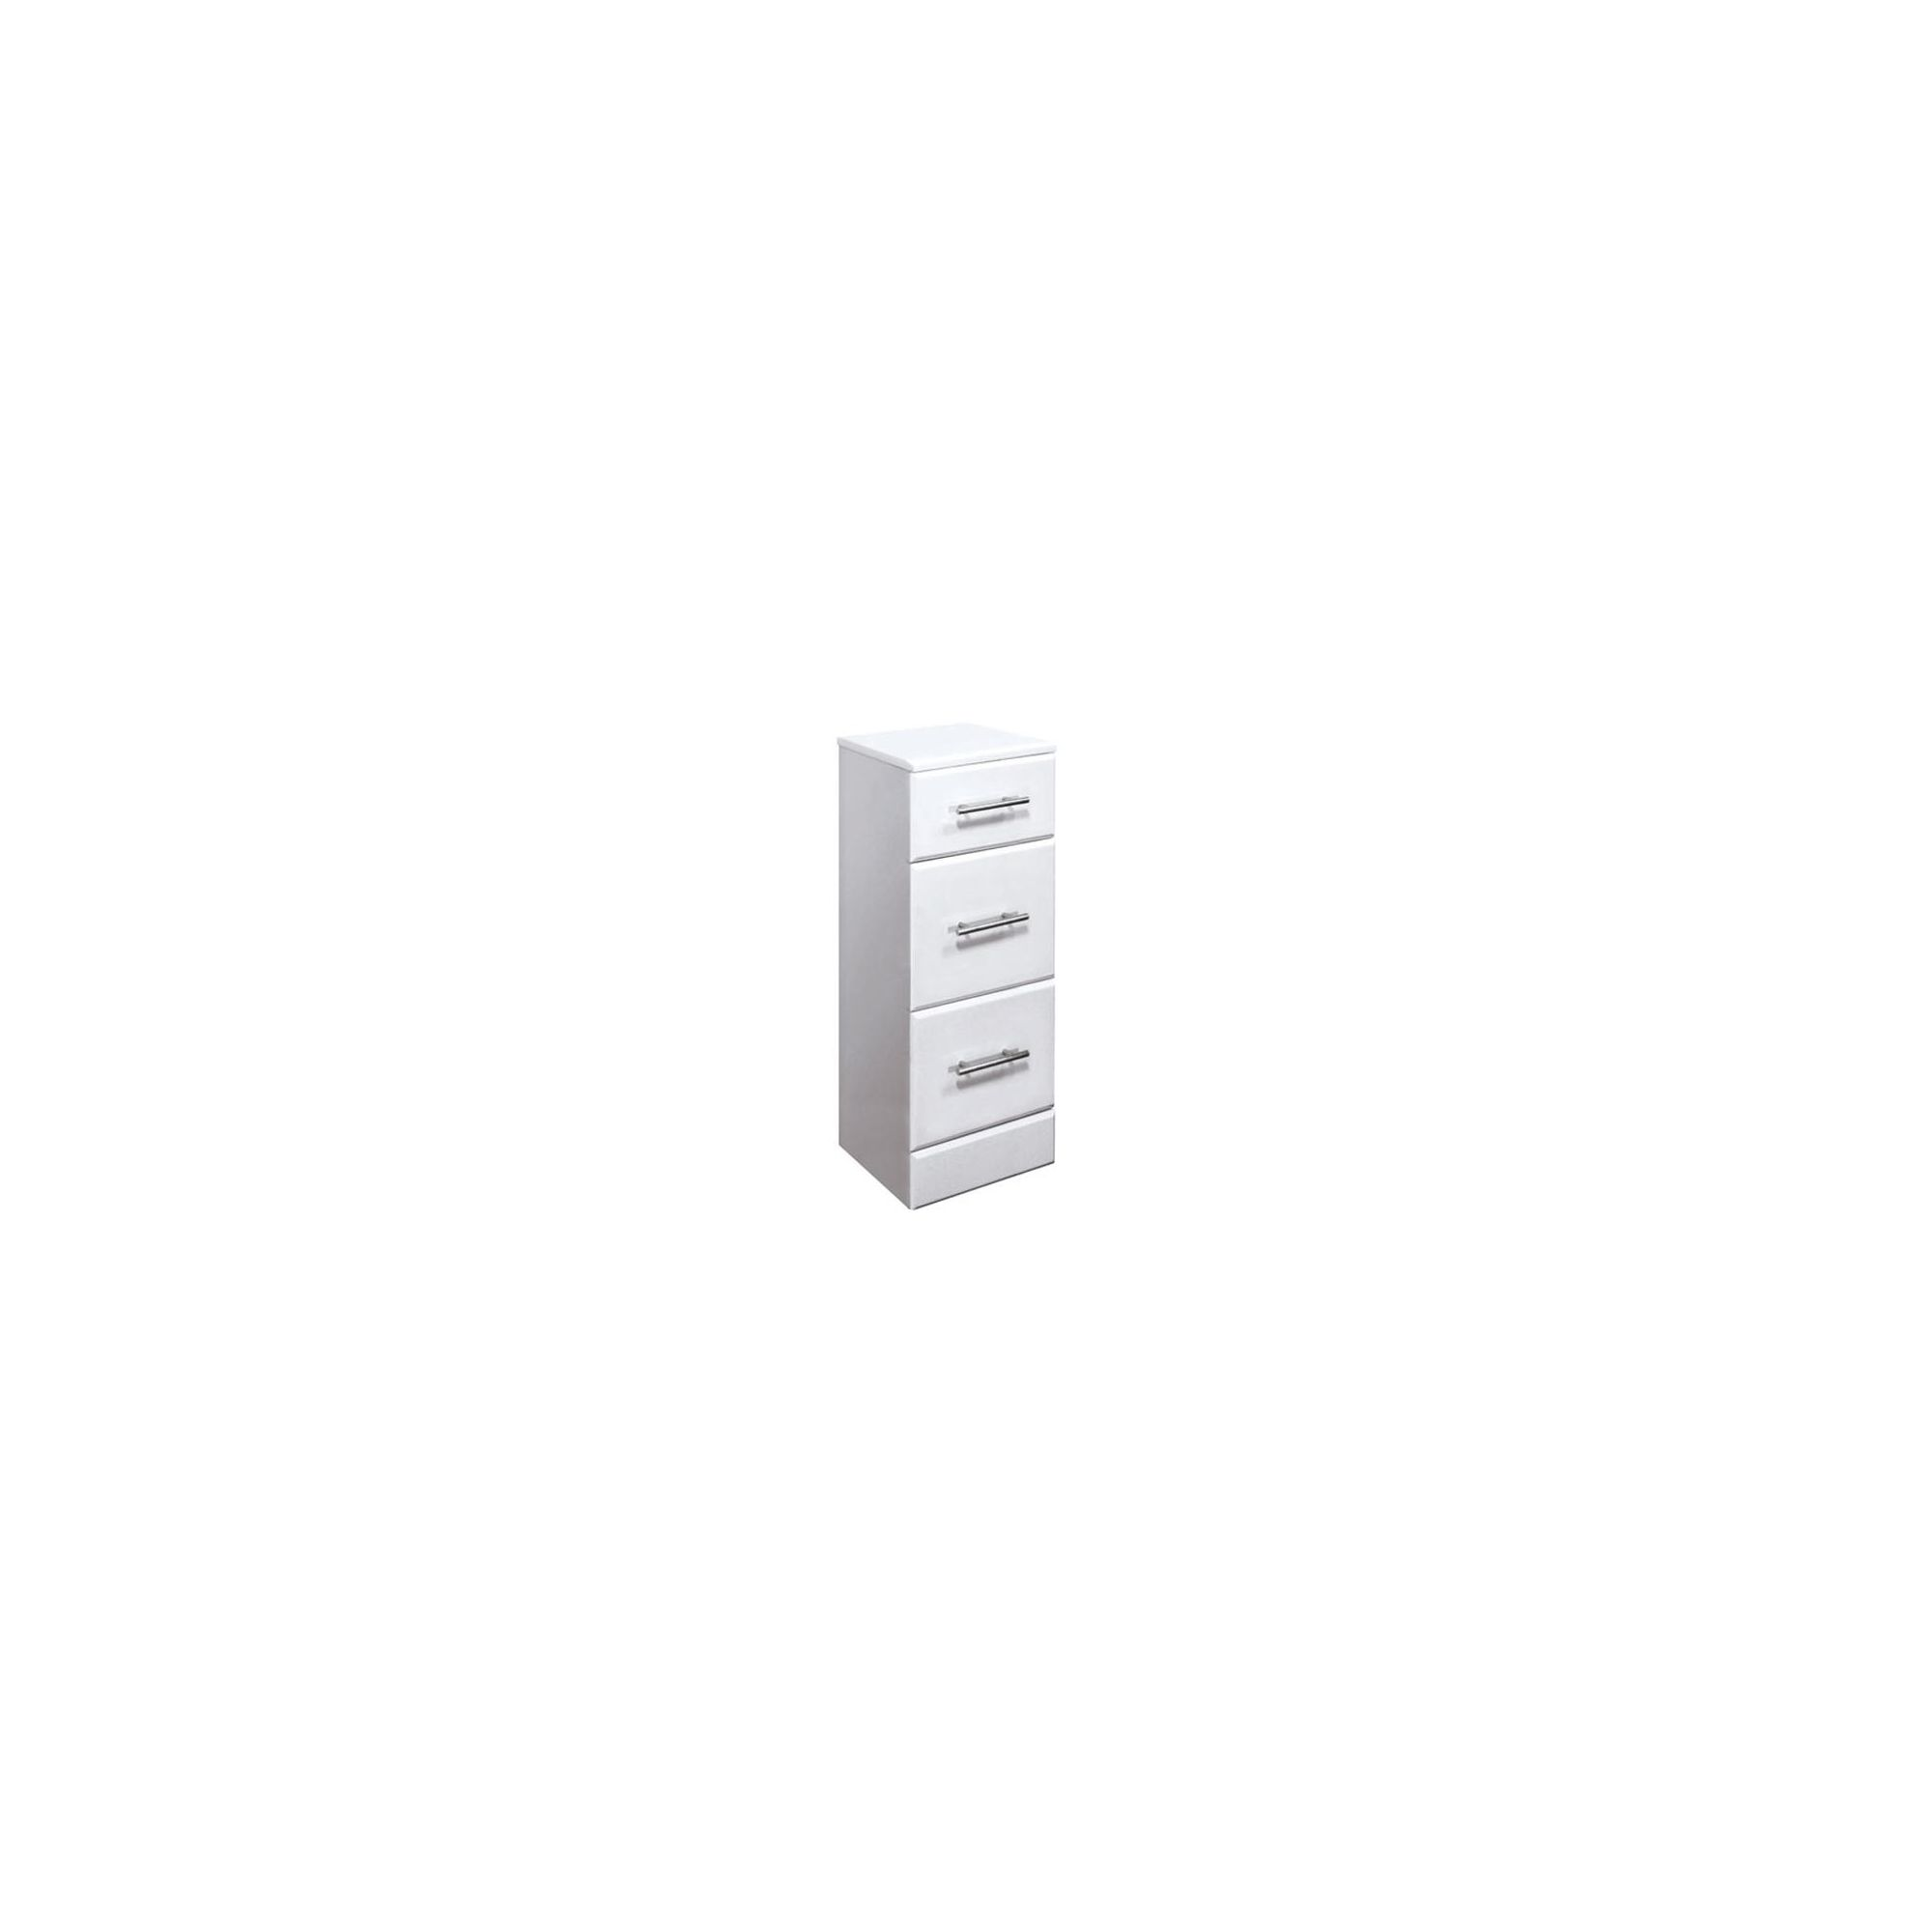 Premier 3 Drawer Vanity Unit High Gloss White 350mm Wide x 330mm Deep